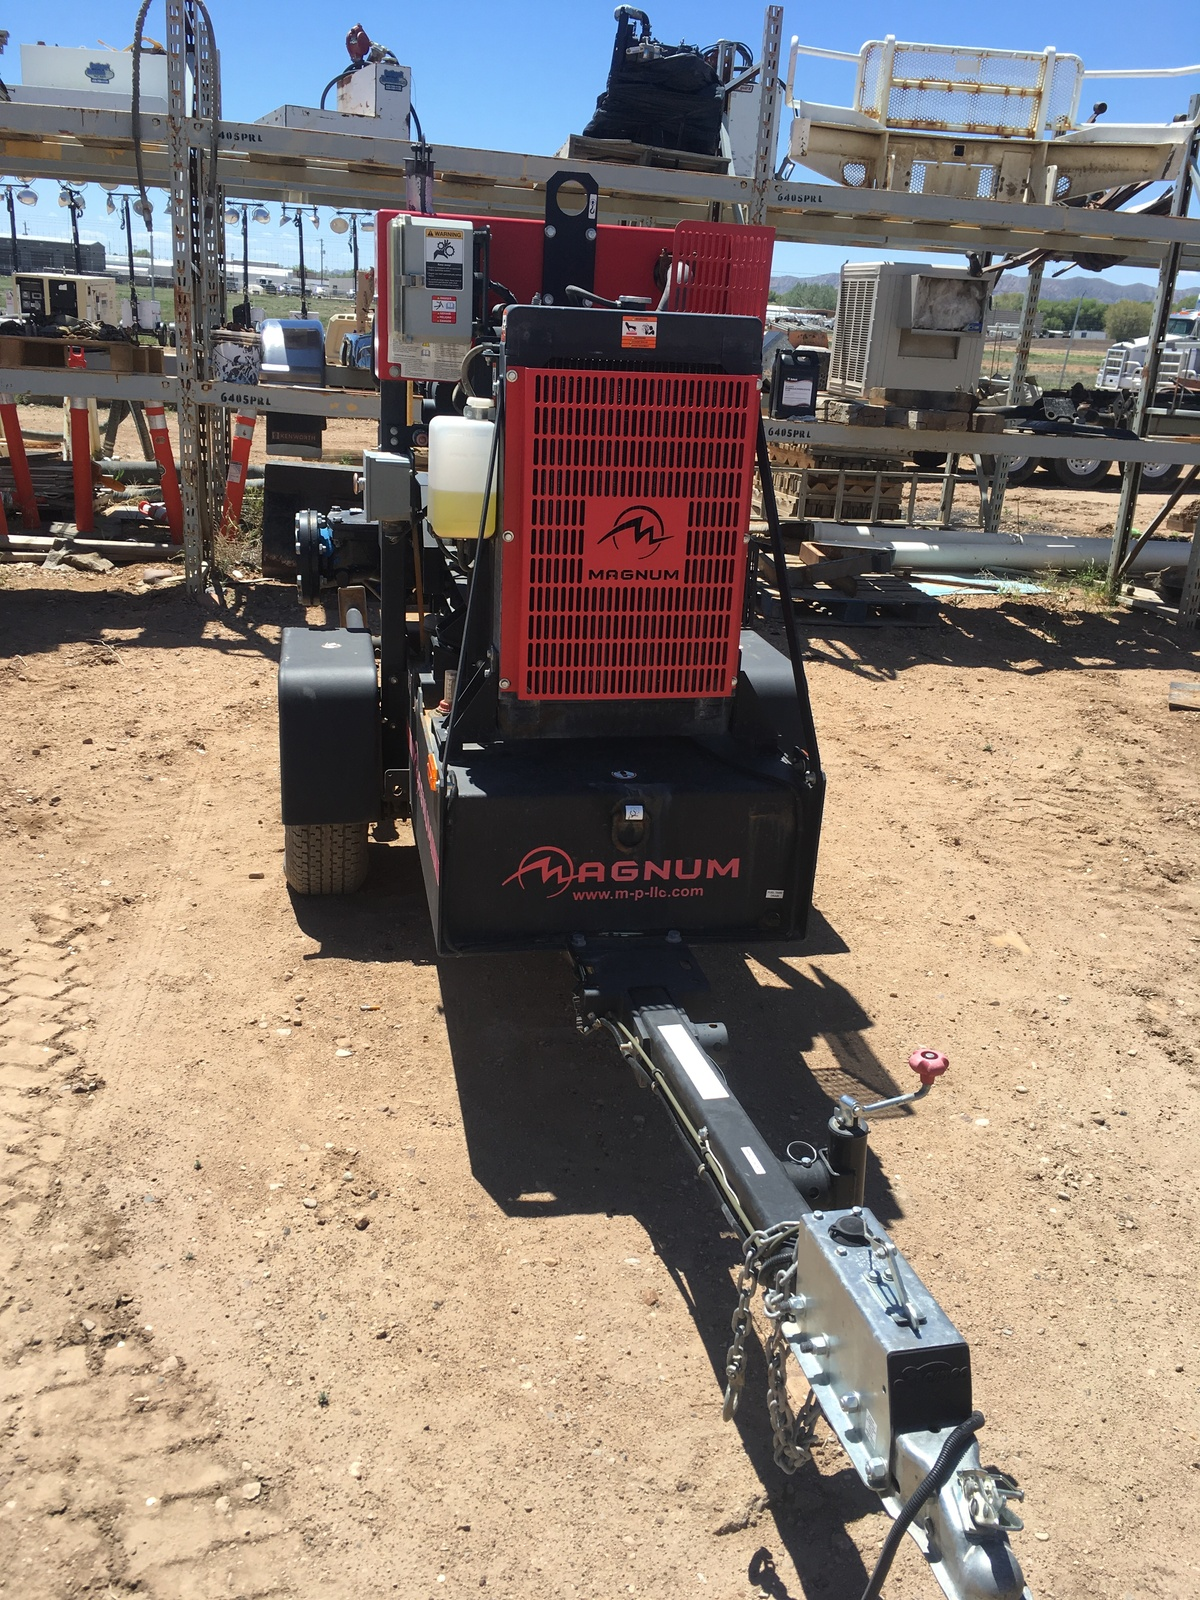 Primary image for 2012 Magnum MTP6000DK14P For Sale in Vernal, Utah 84078